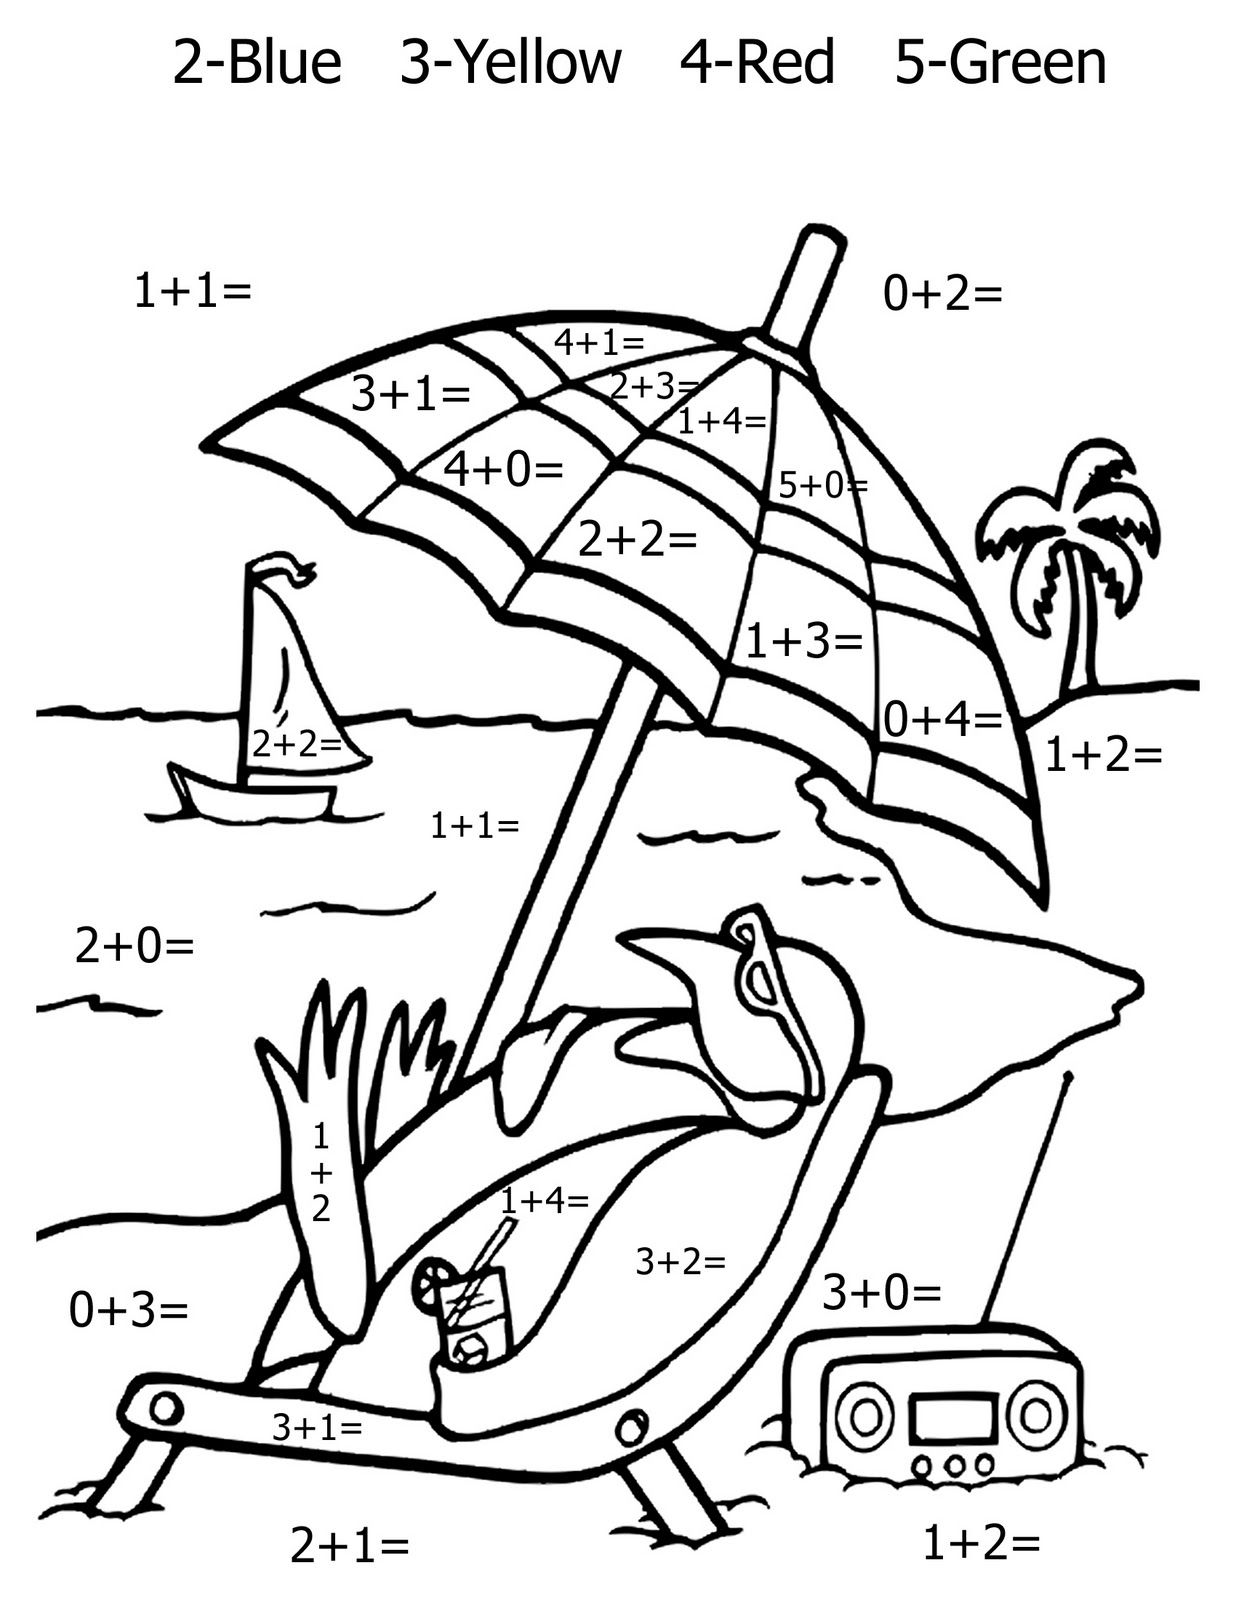 Printable coloring pages with math problems - We Have Collected The Best Color By Number Worksheets For You To Print Which Contain The Combination Of Coloring Activity And Counting Games